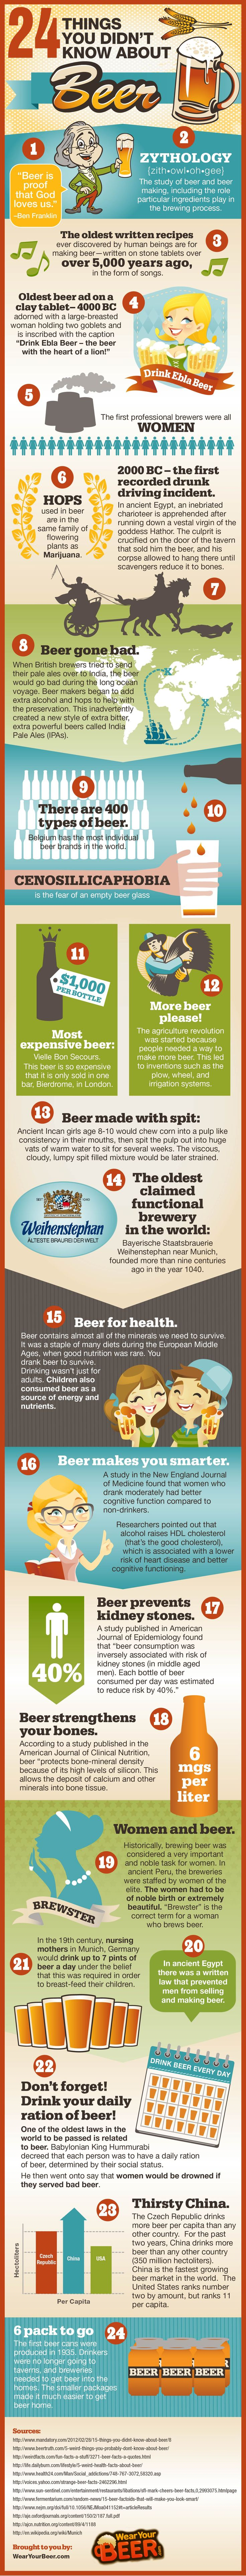 What You Didn't Know About Beer - http://www.huffingtonpost.com/2013/04/05/beer-facts-trivia_n_3016246.html?utm_hp_ref=mostpopular